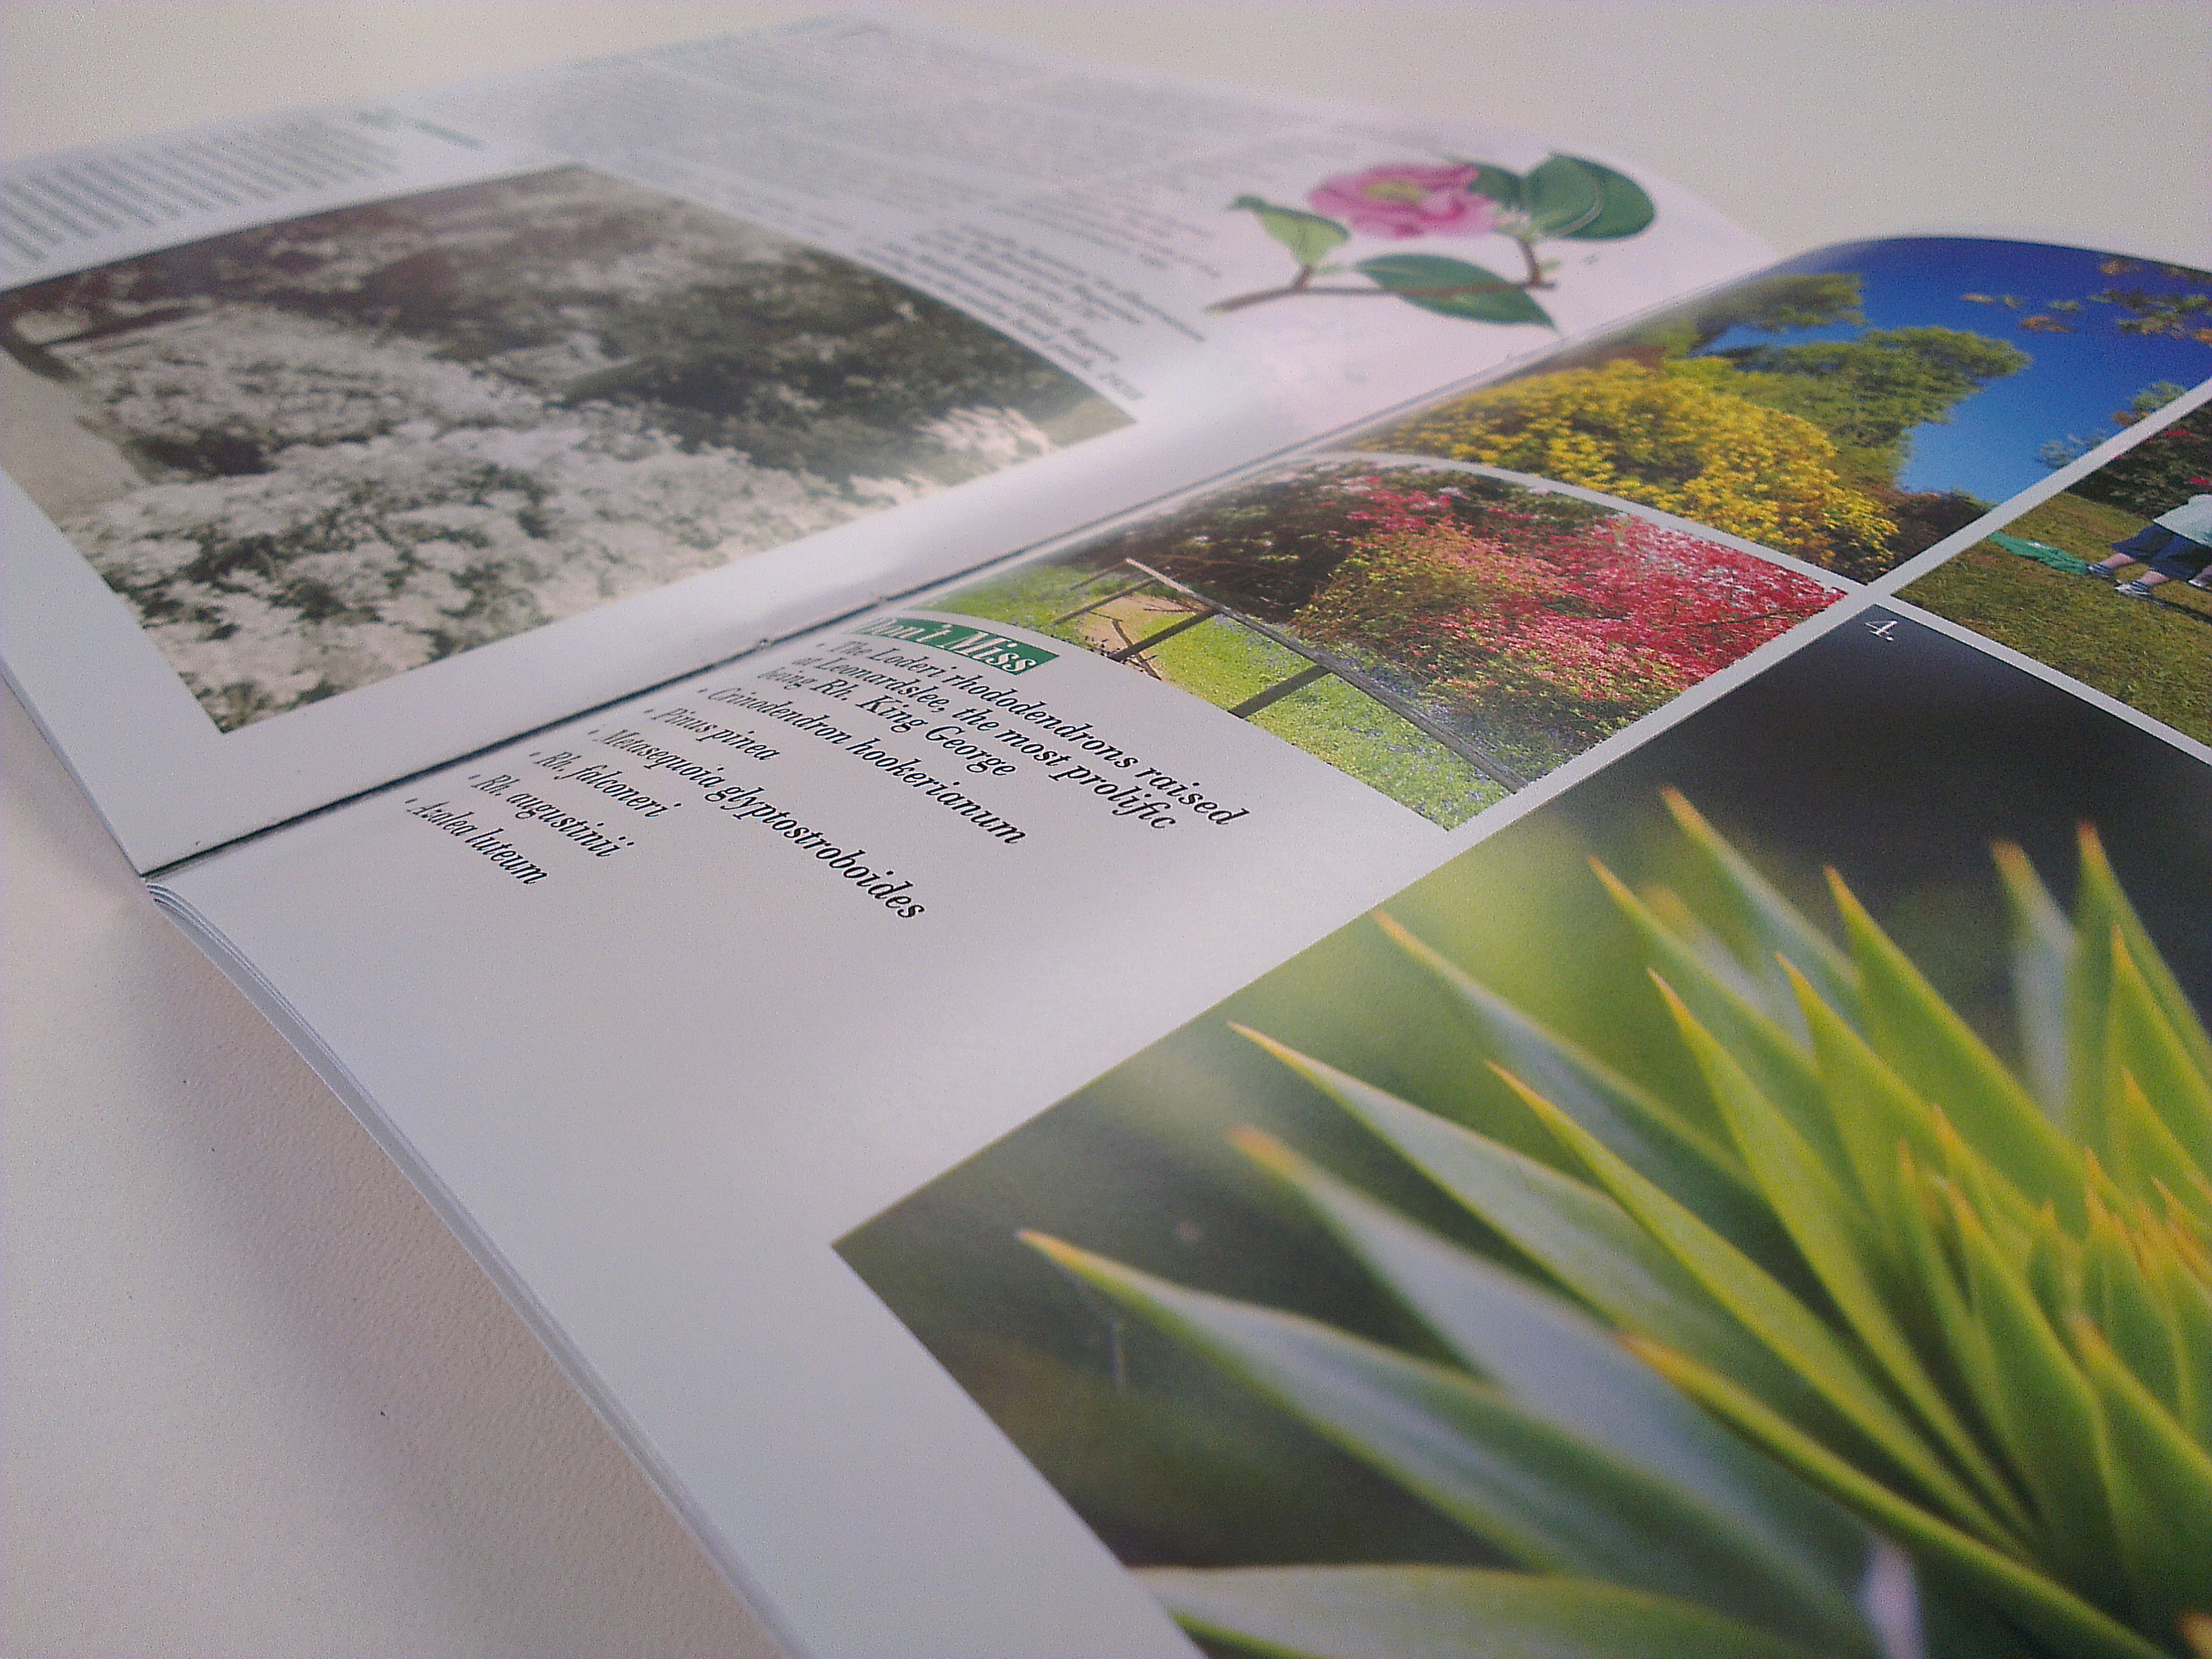 riverhill gardens guide book design, sevenoaks